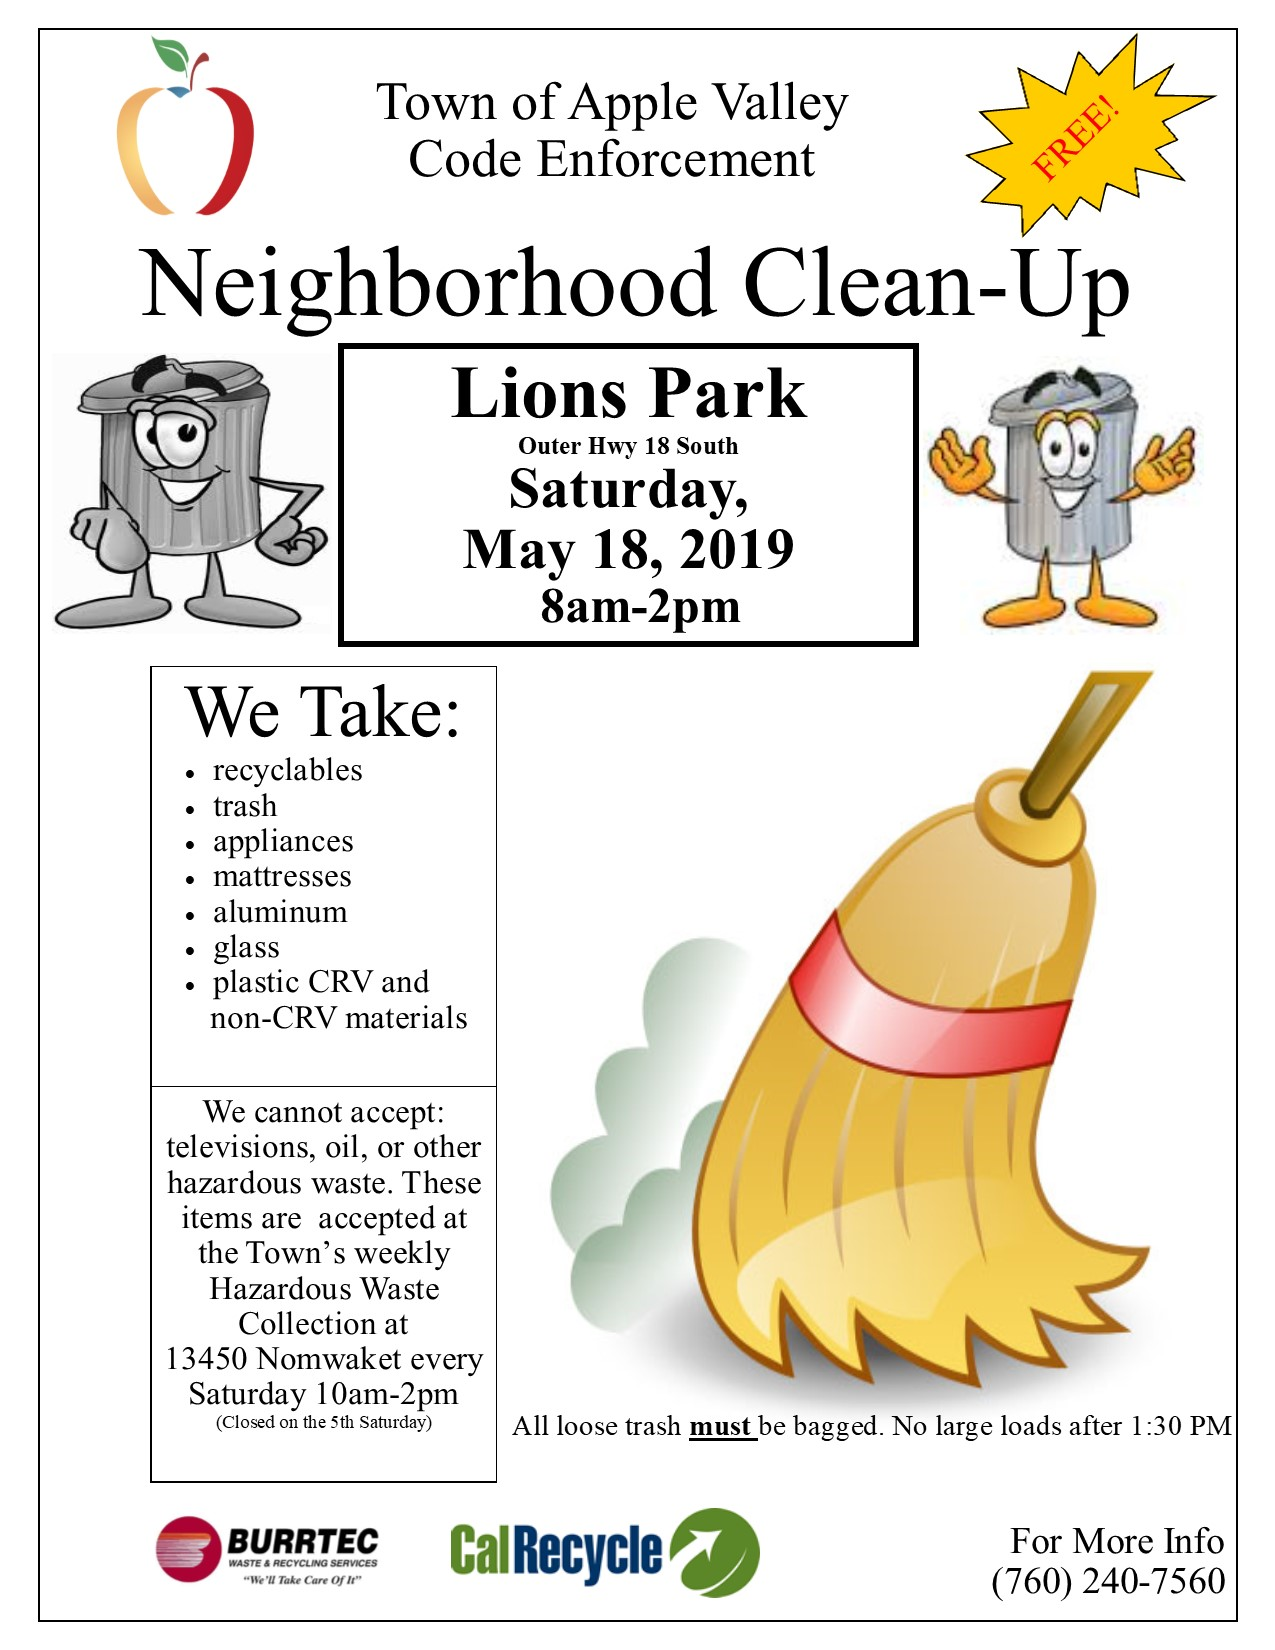 Neighborhood Clean-up May 18, 2019